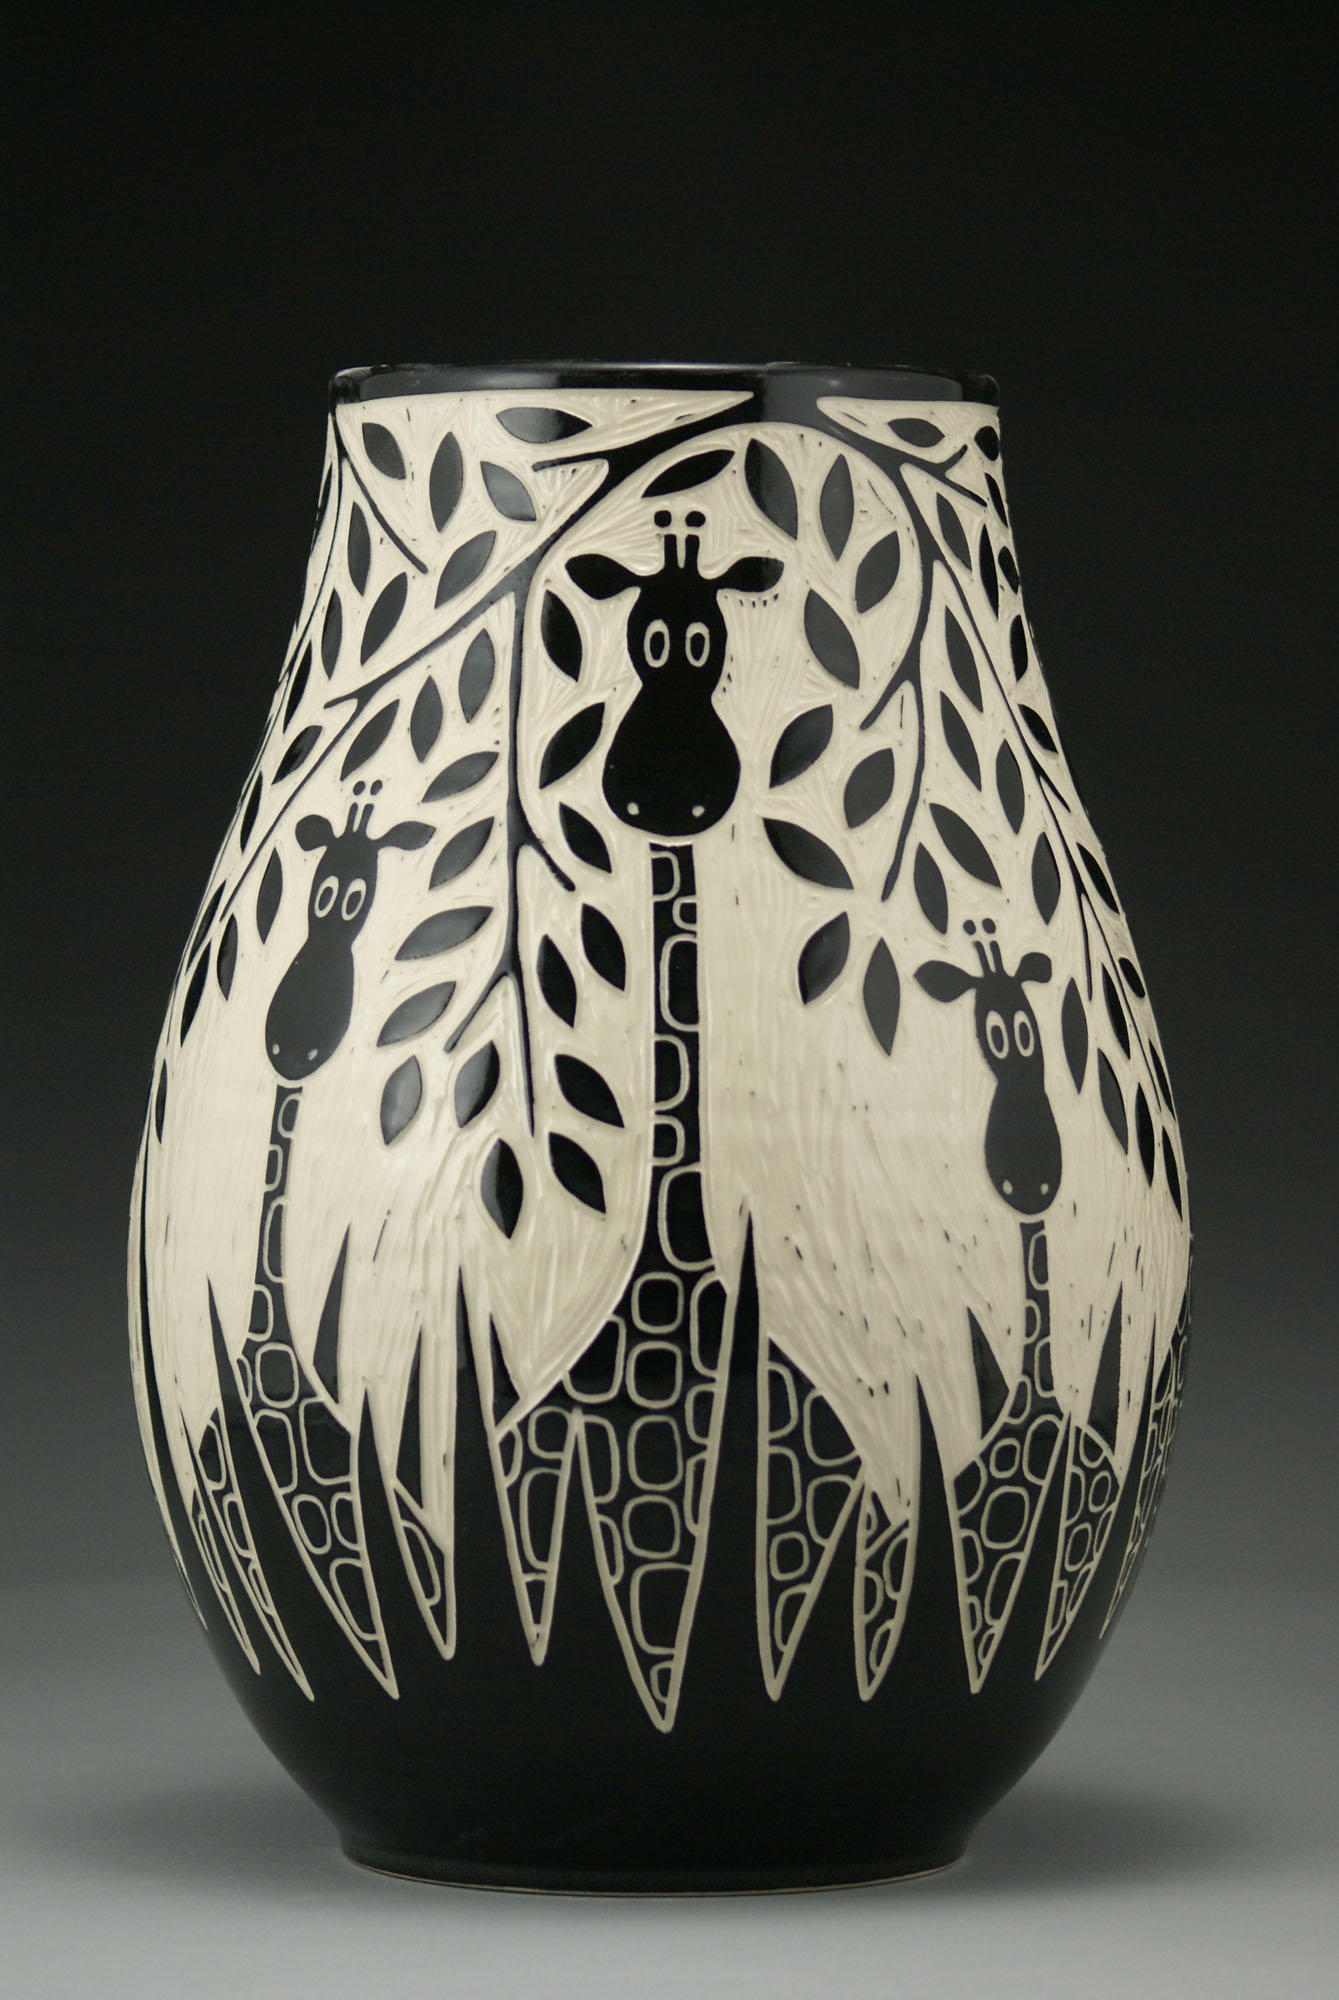 Giraffes In The Wild By Jennifer Falter Ceramic Vase